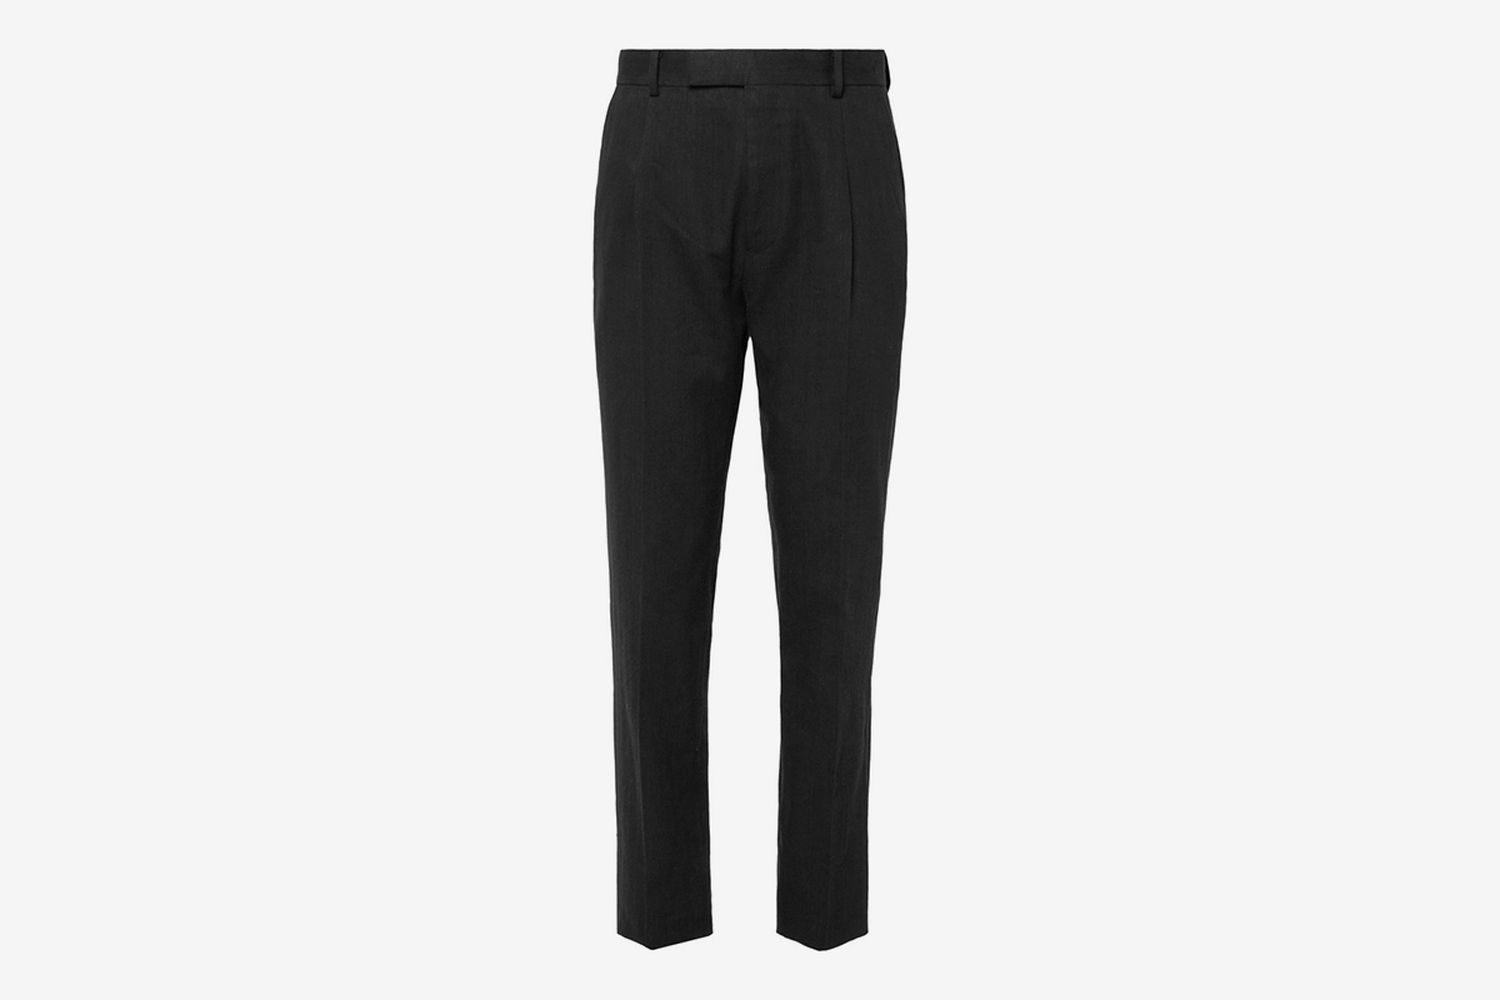 Tapered Pleated Herringbone Linen Suit Trousers